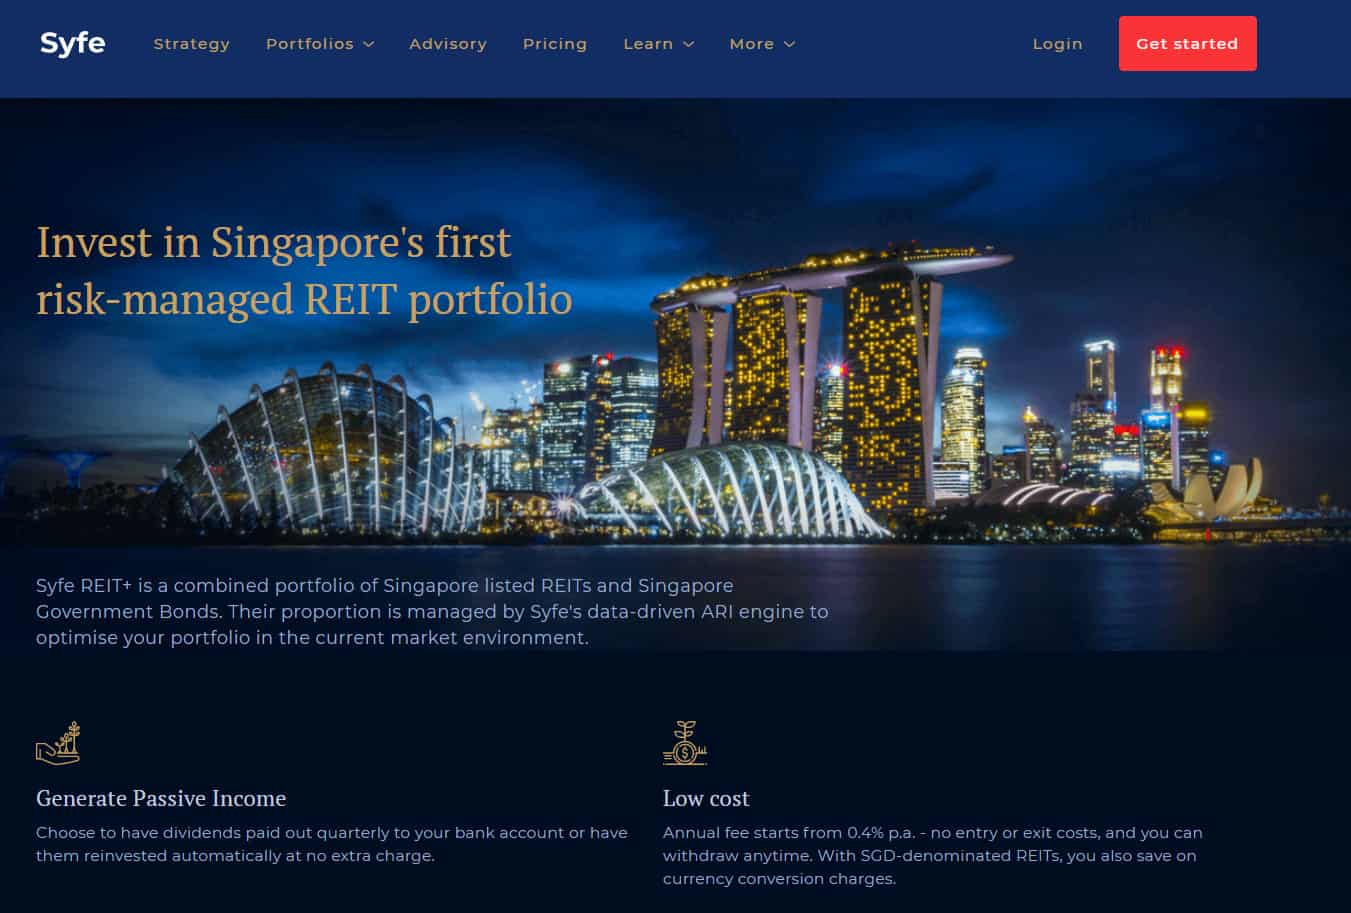 Updated Syfe REIT+ Portfolio Review – And Promo Code!